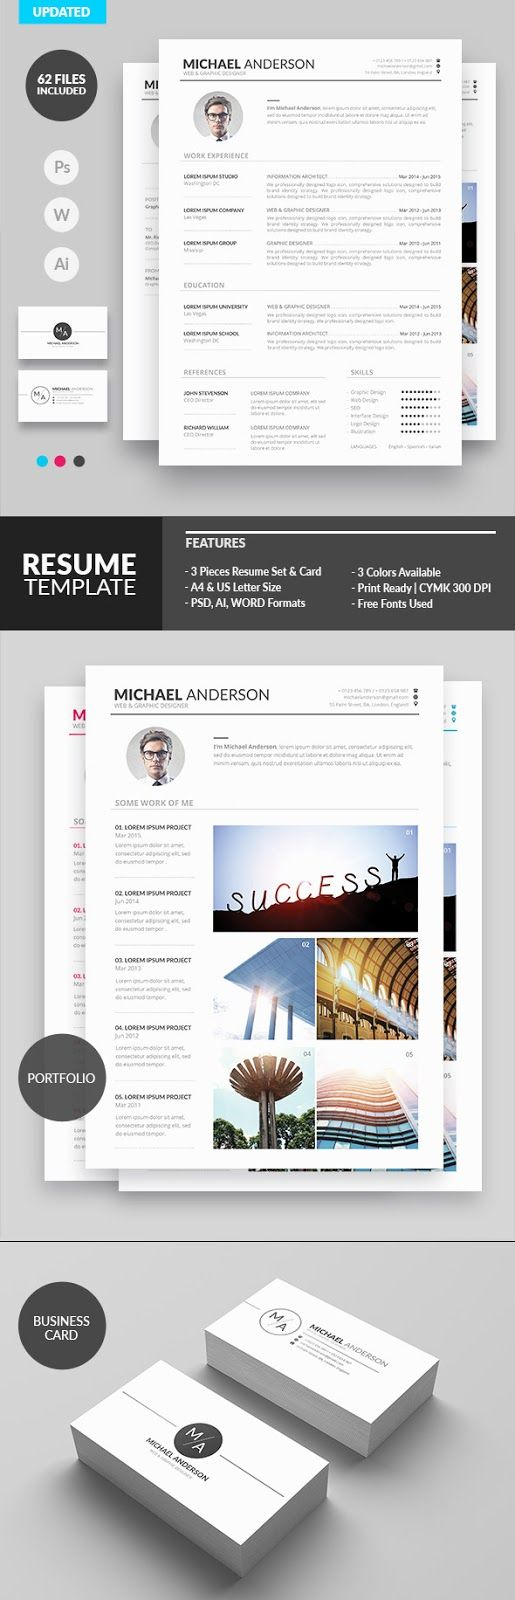 Best 25 Latex Resume Template Ideas On Pinterest Simple Cover